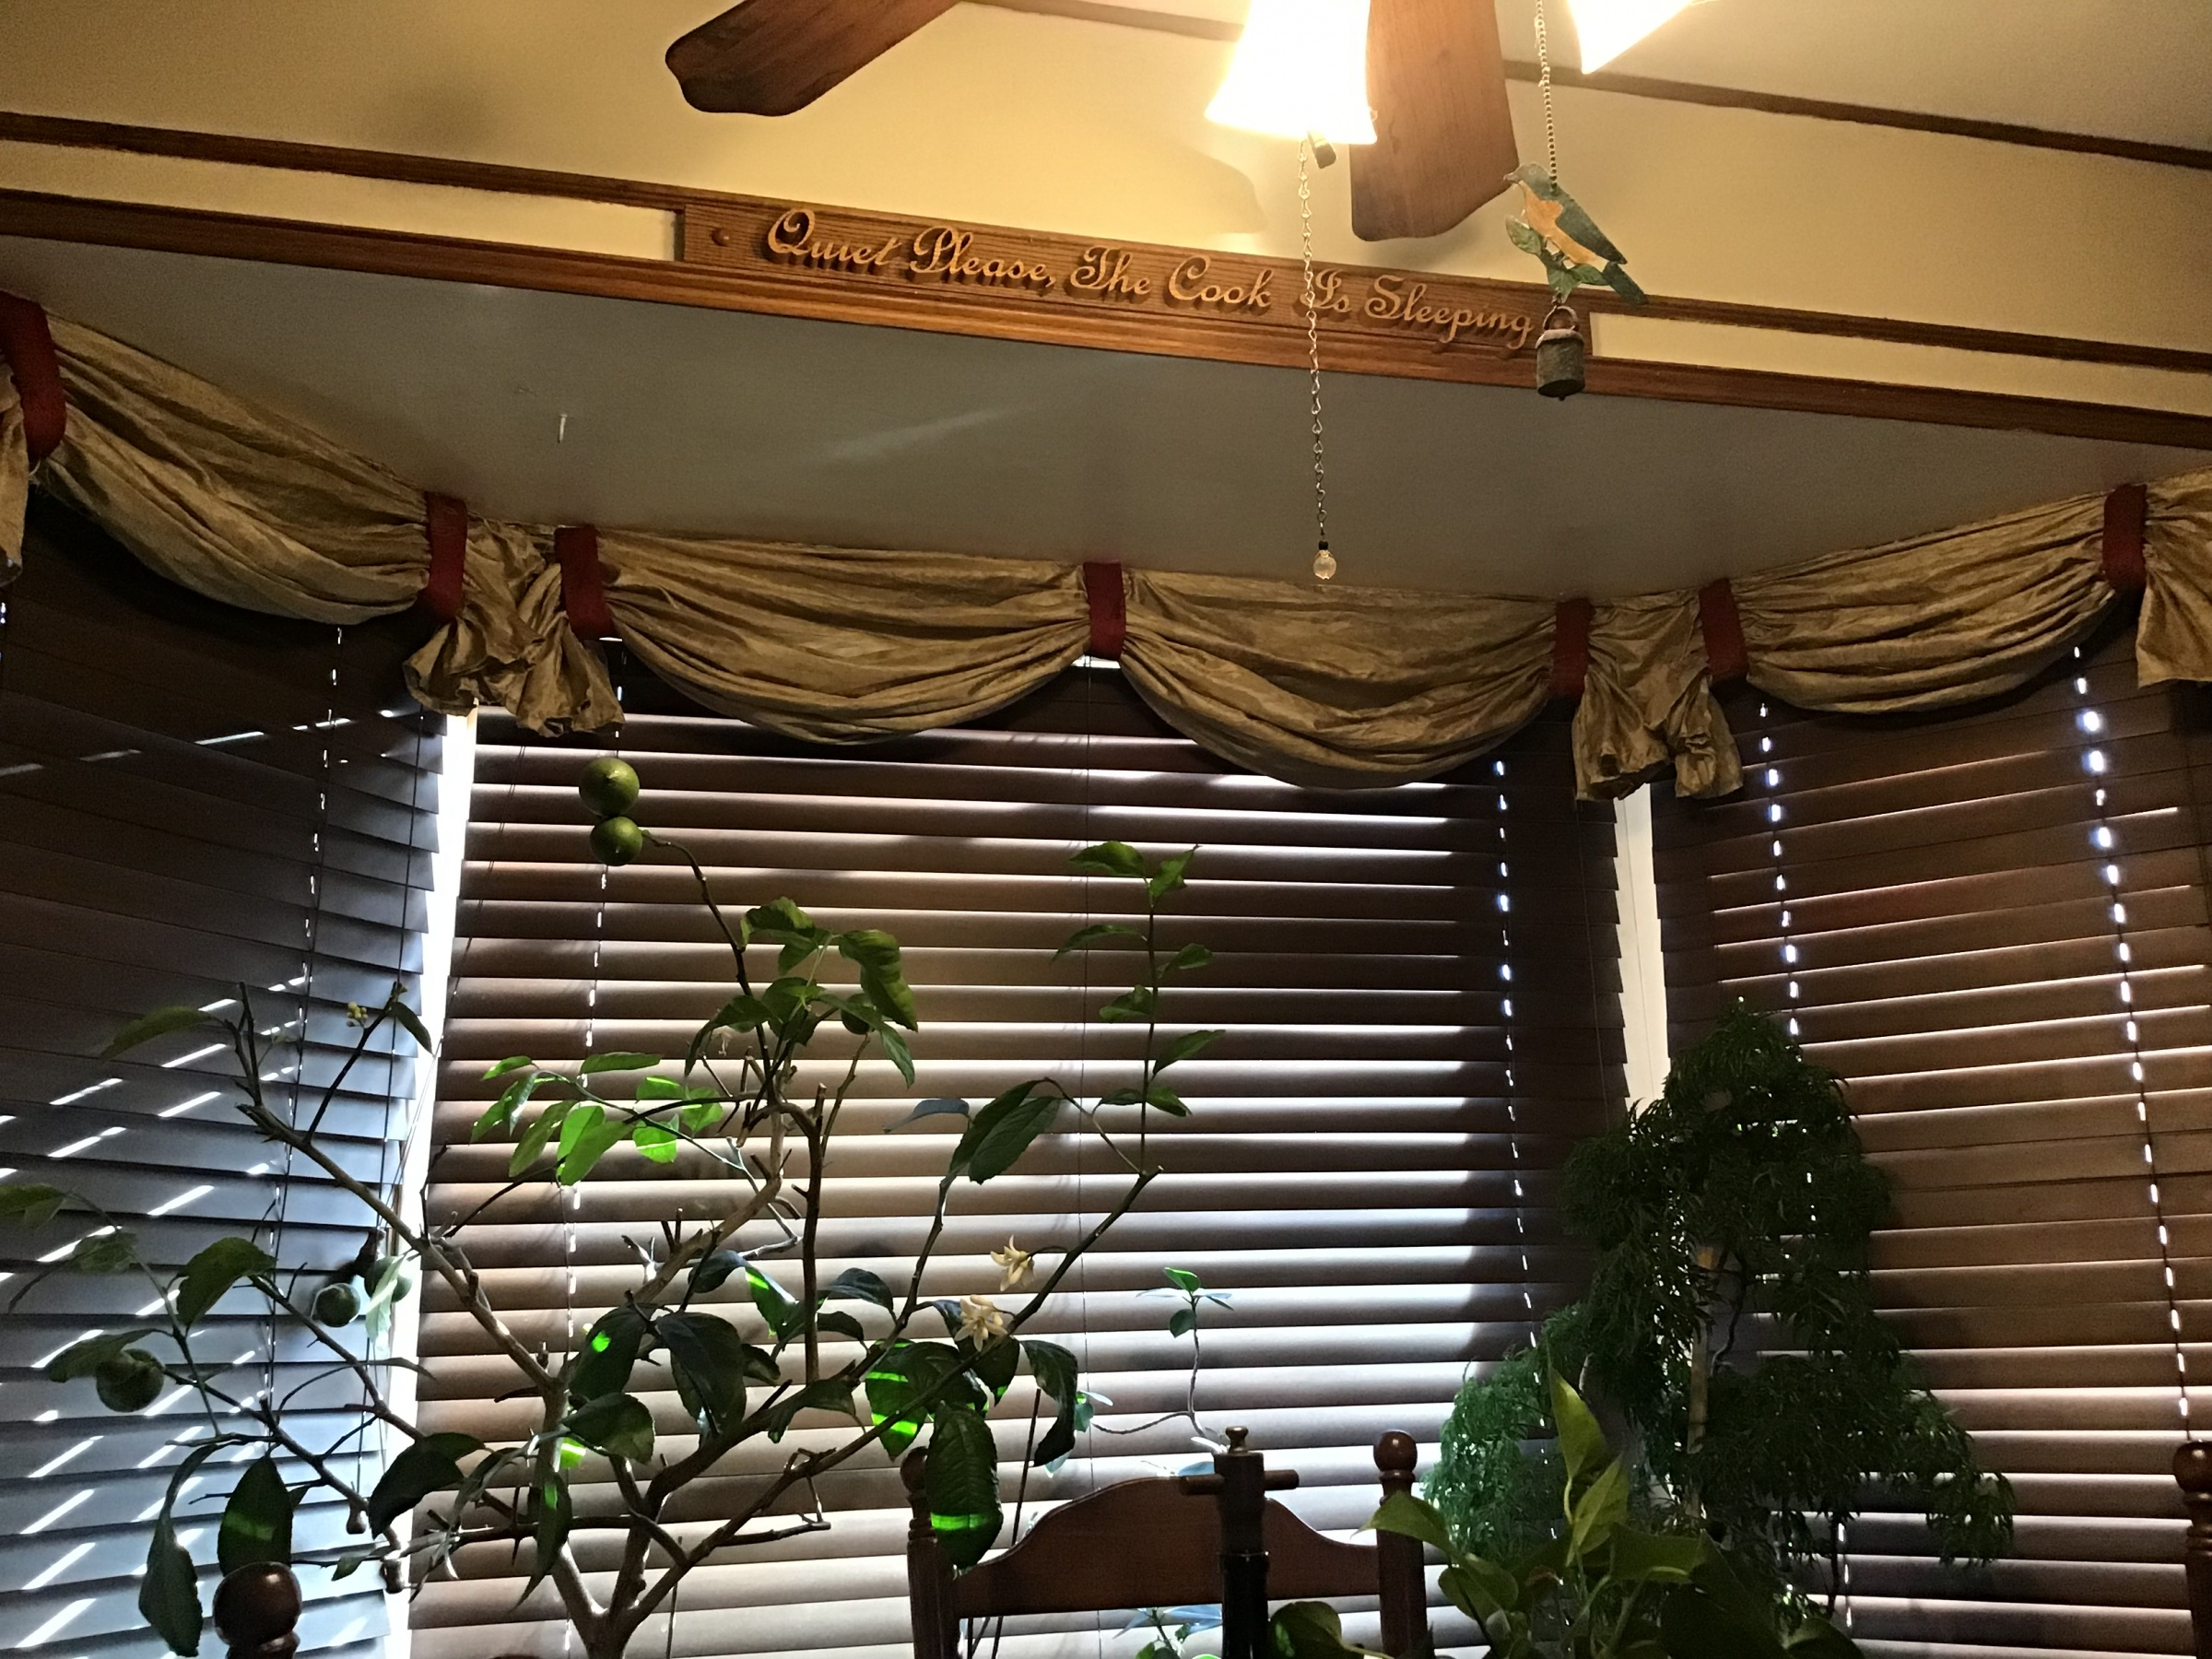 How to install a valance in a bay window.-db0256e7-2693-4672-a901-dd779bf0e6f0.jpg